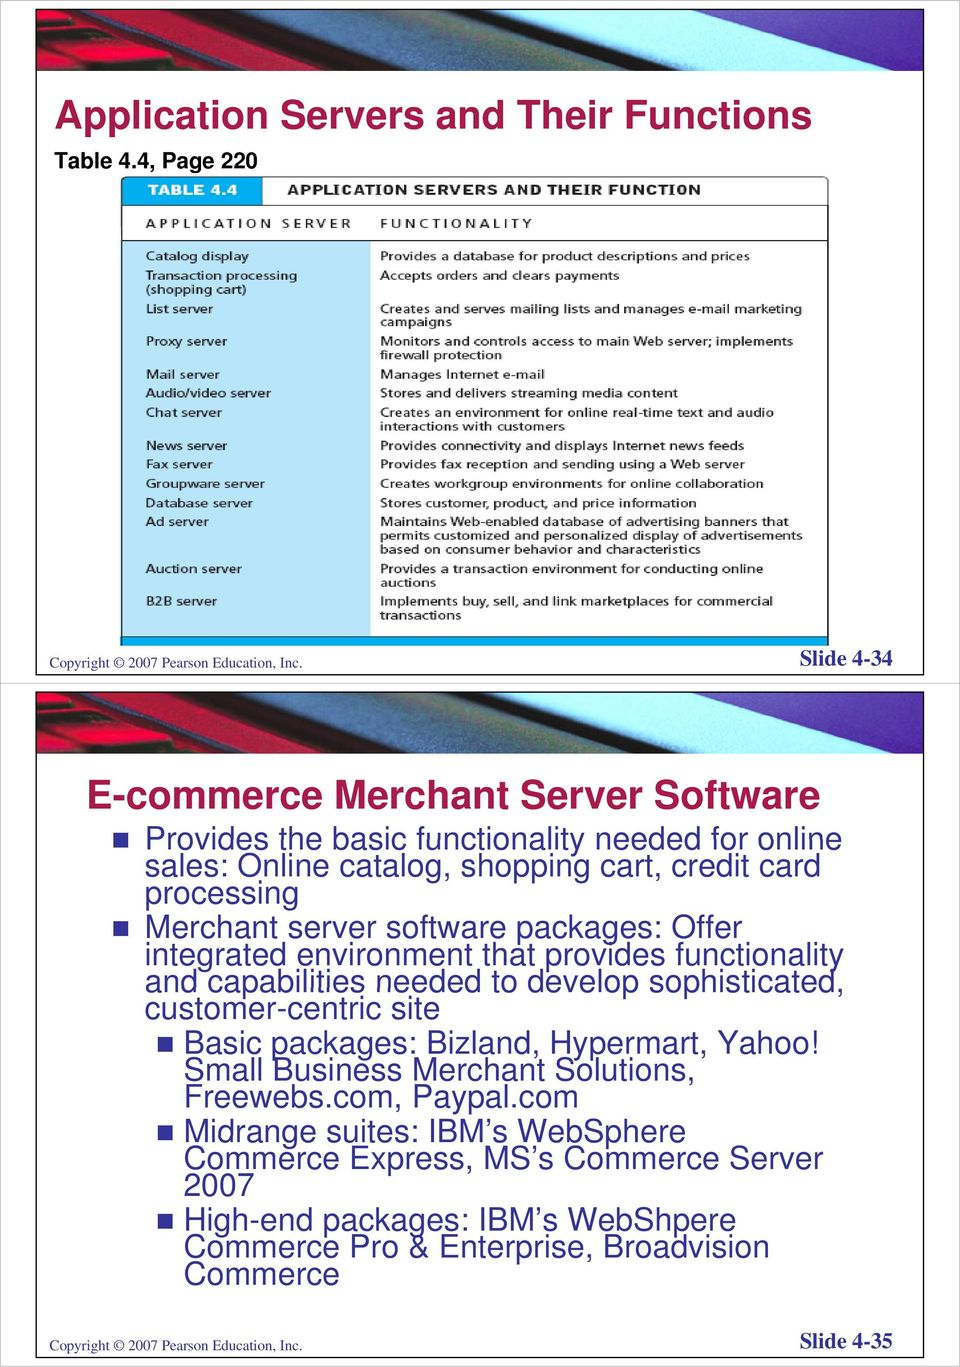 packages: Offer integrated environment that provides functionality and capabilities needed to develop sophisticated, customer-centric site Basic packages: Bizland, Hypermart, Yahoo!